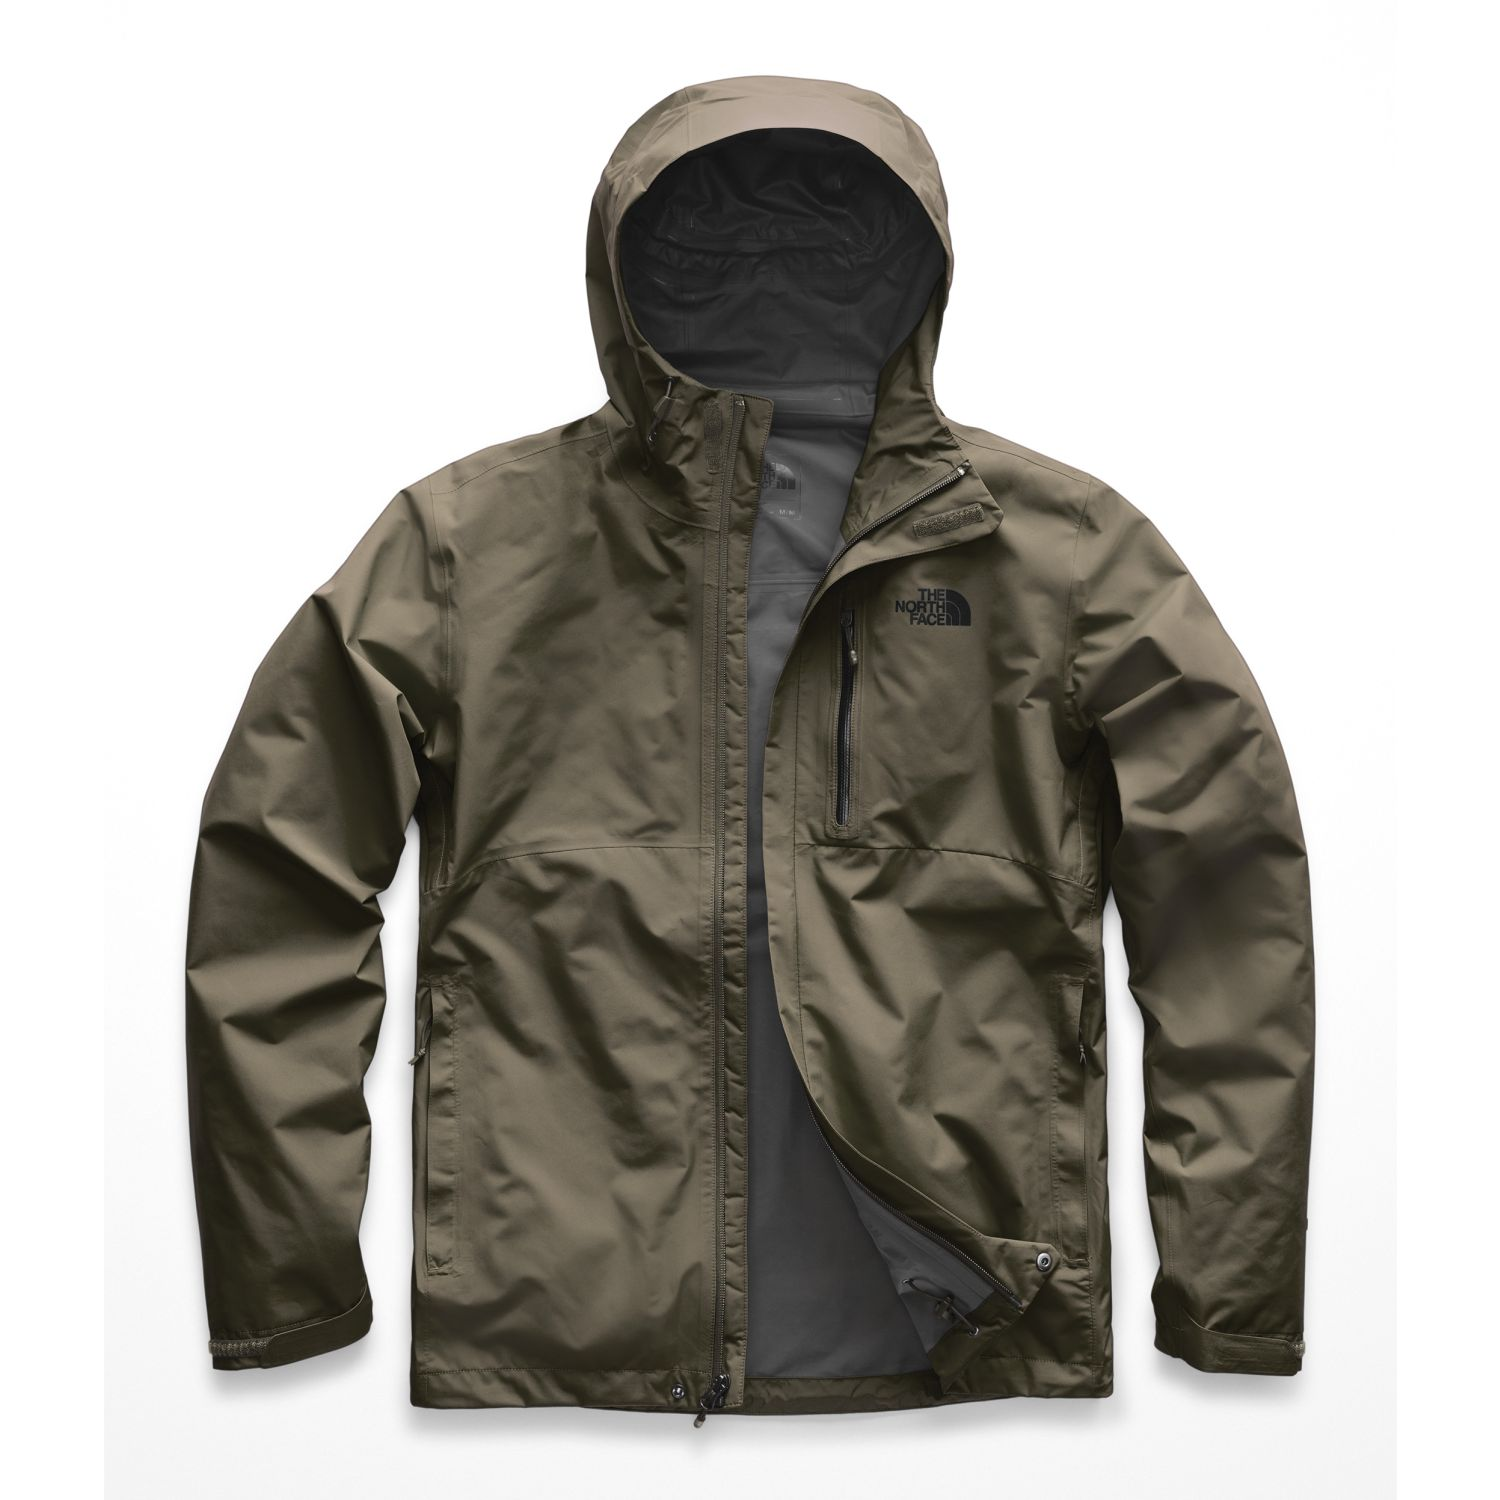 The North Face M DRYZZLE JACKET Olivo Impermeables y chaquetas